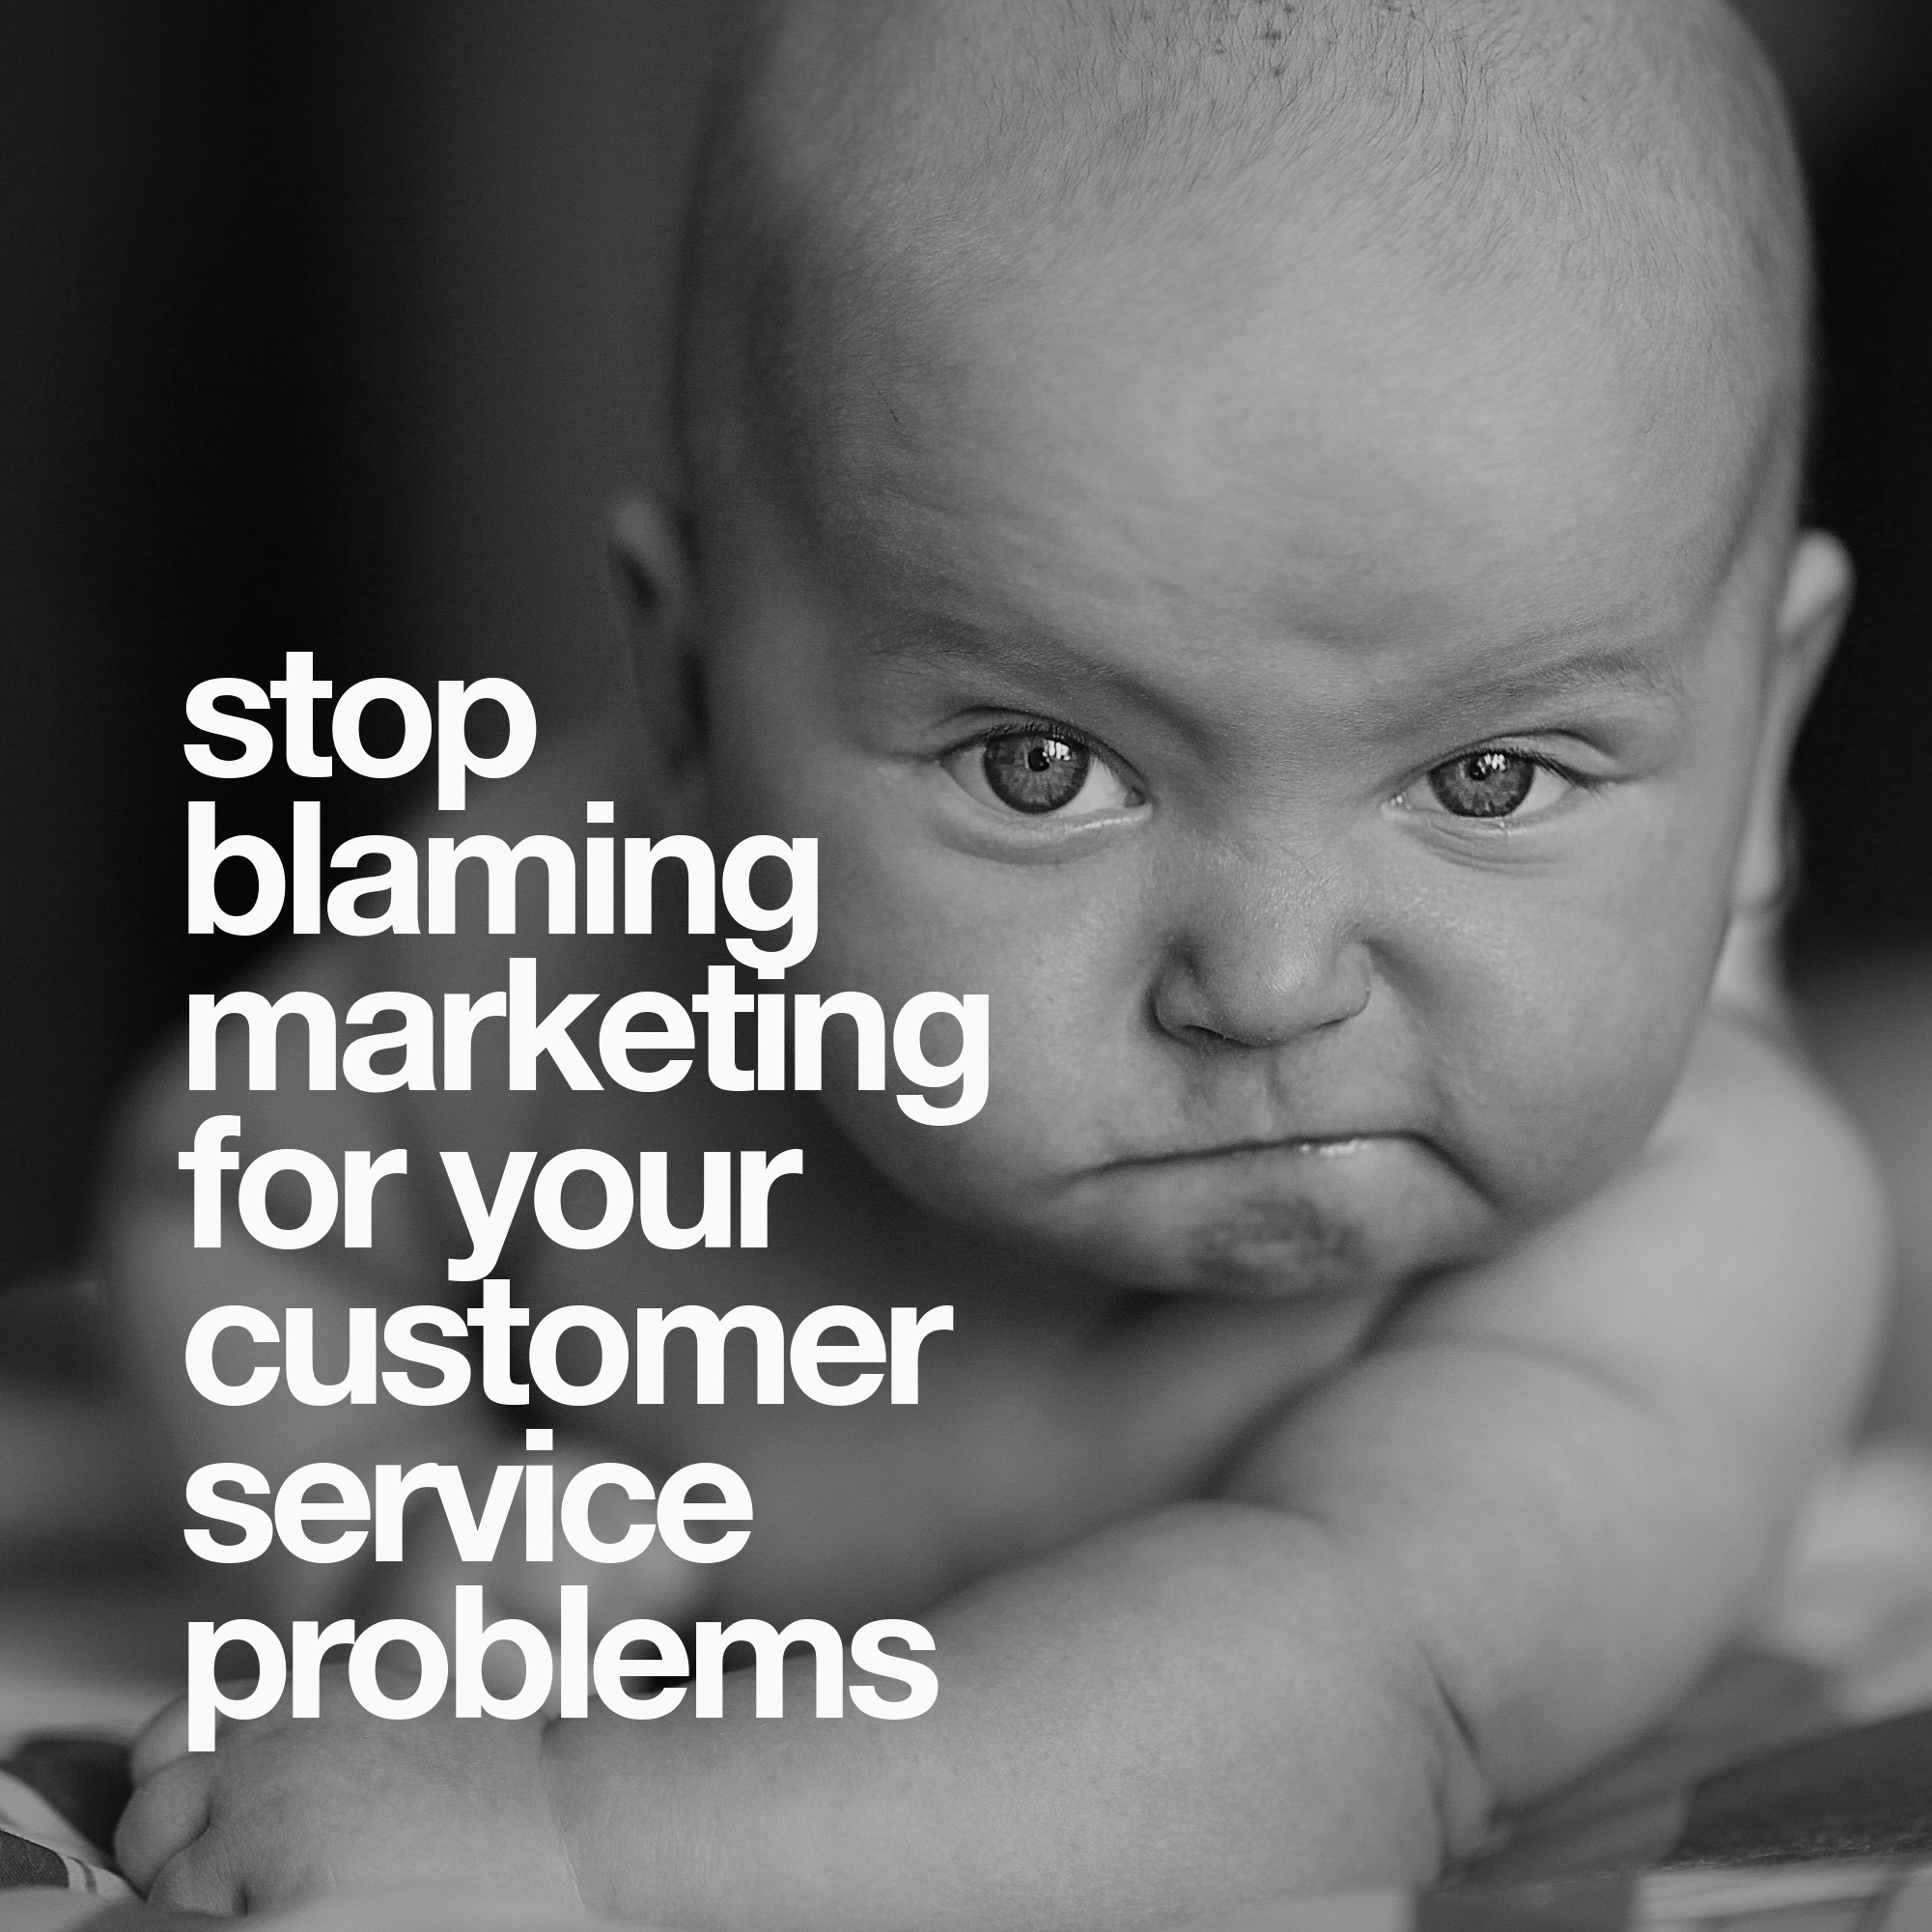 stop-blaming-marketing-for-your-customer-service-problems